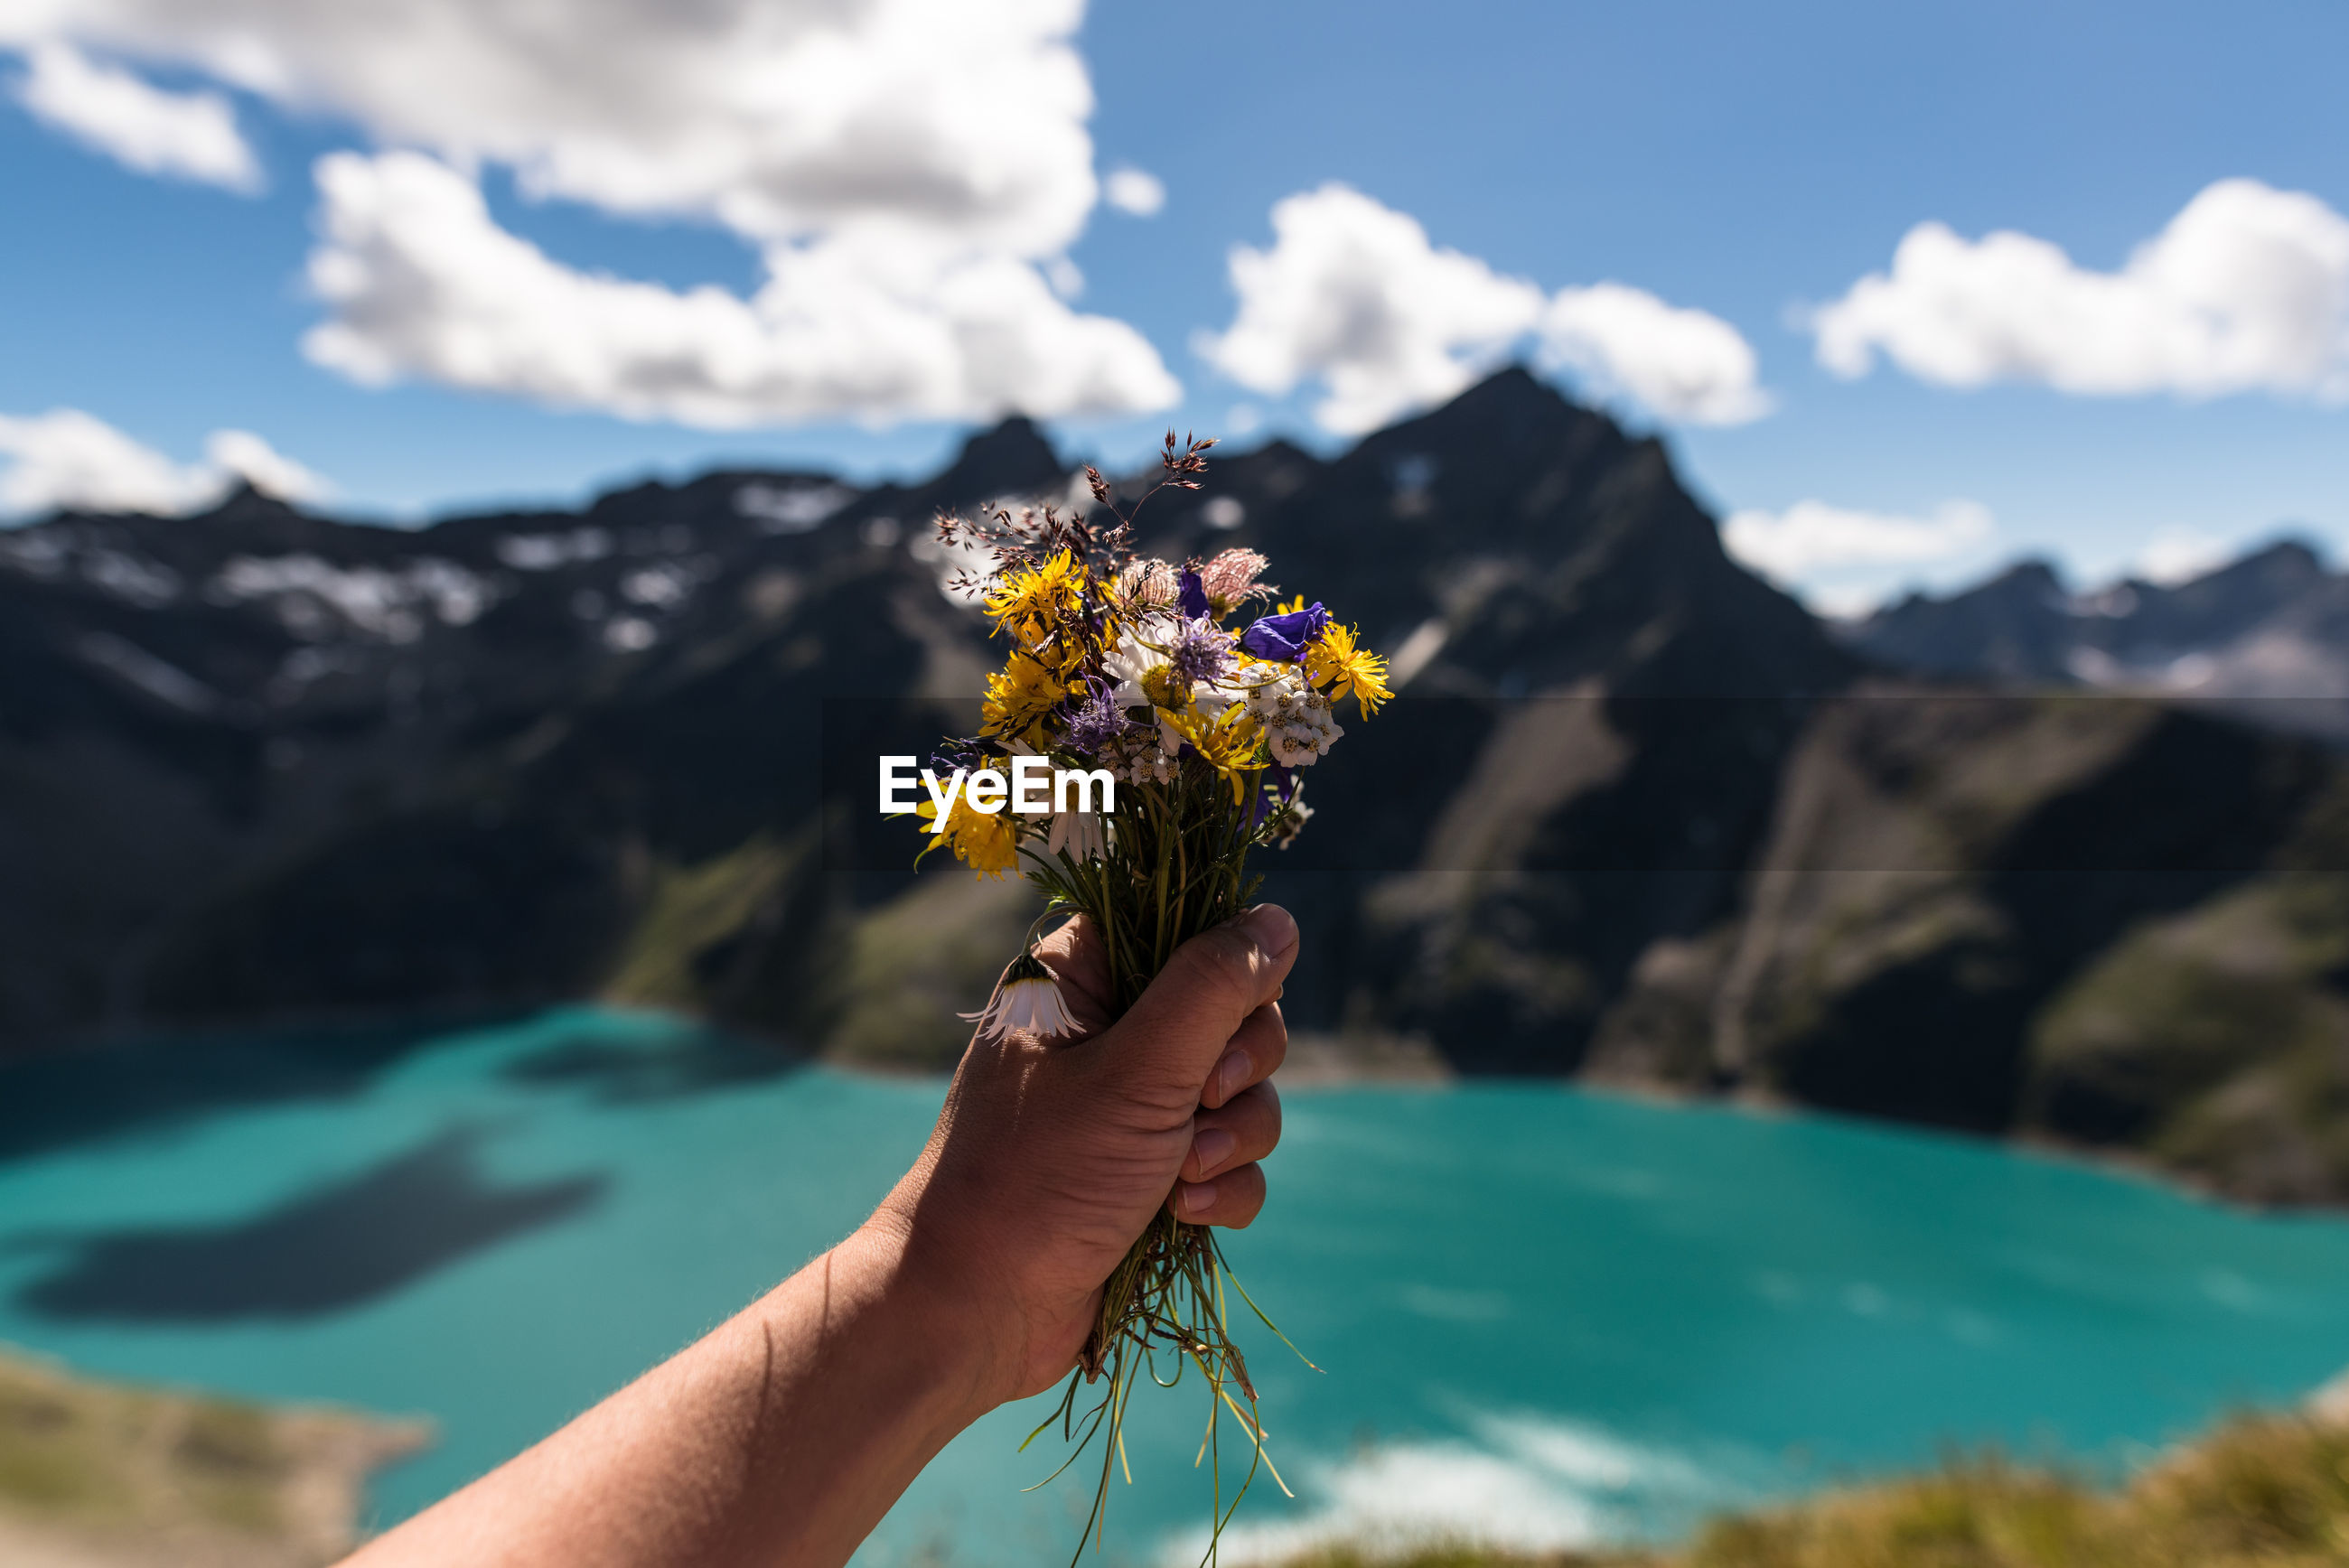 Cropped image of hand holding flowers against mountains